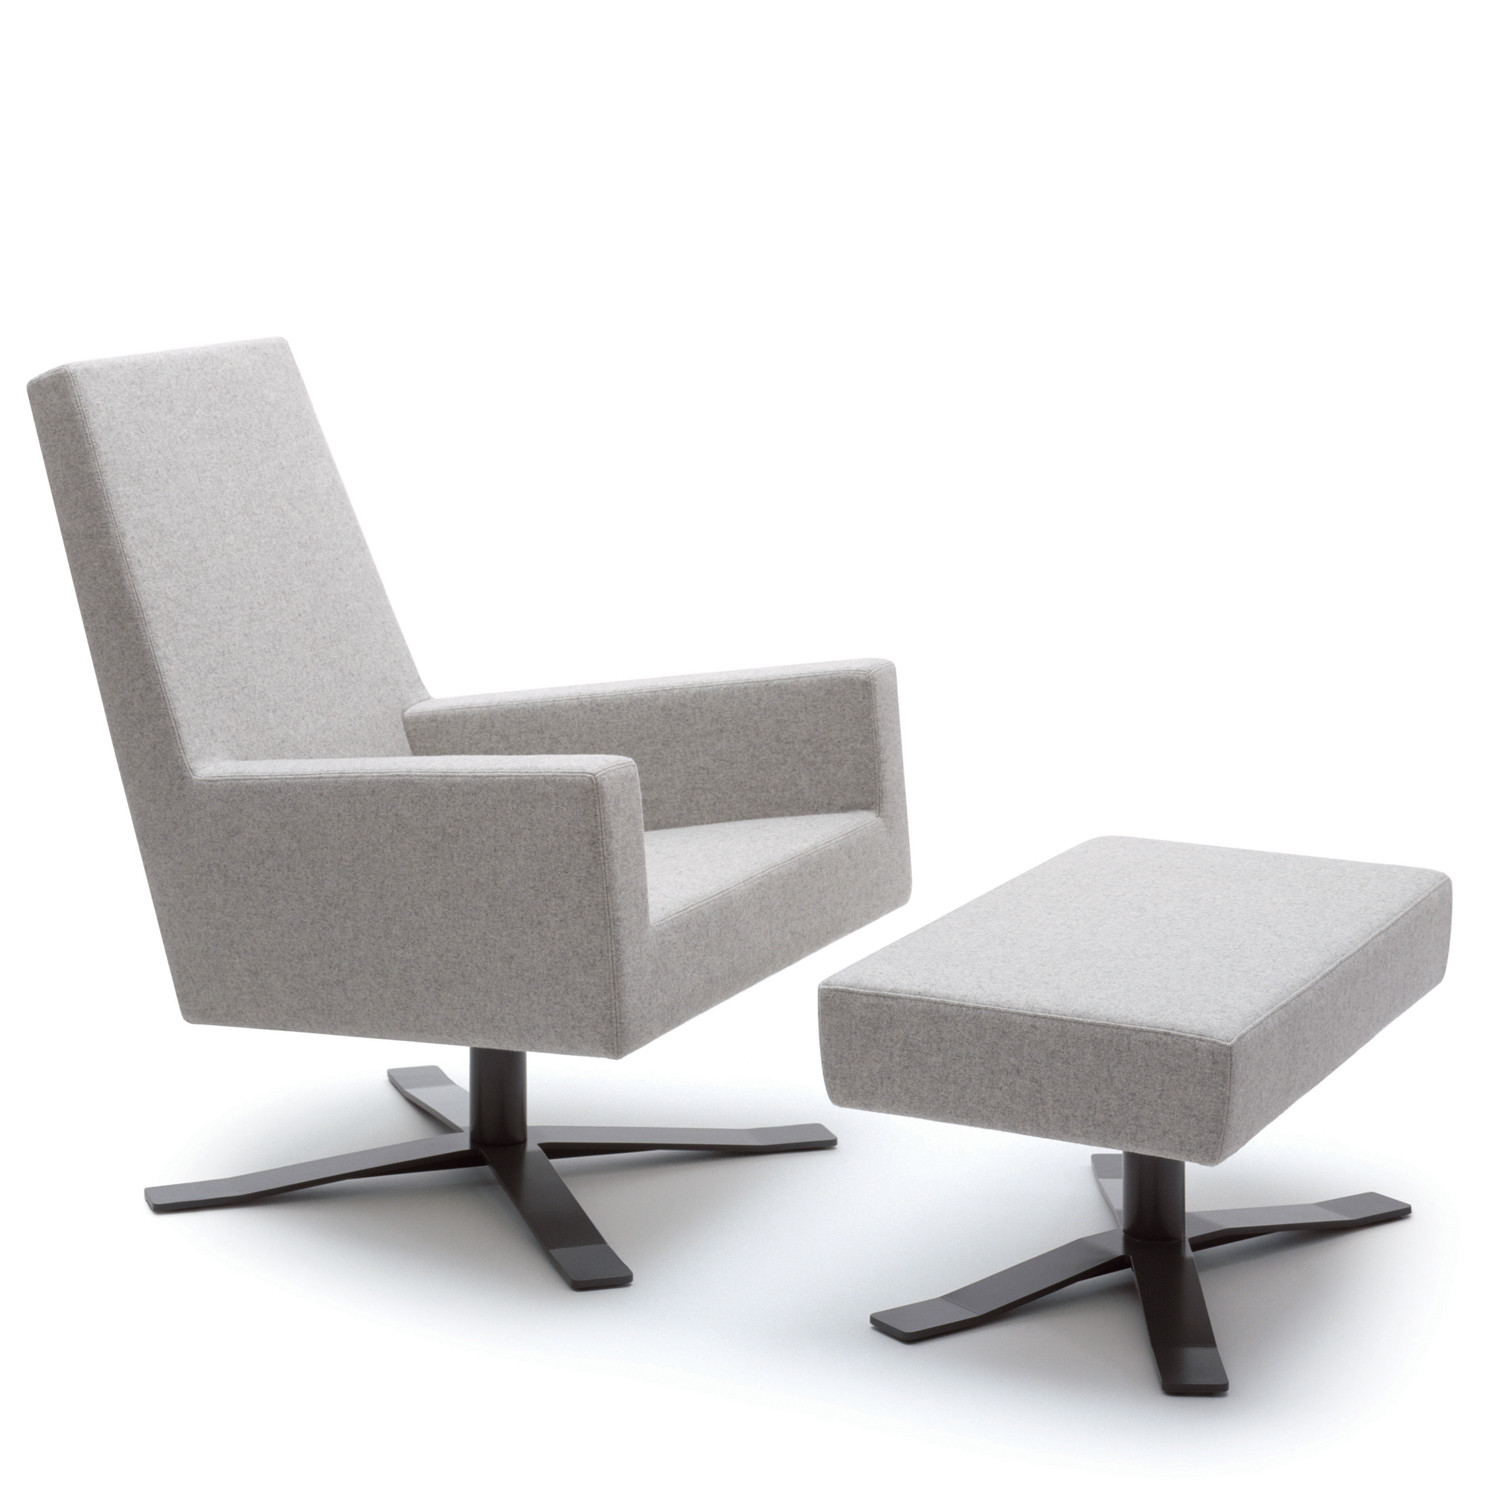 HM44 Armchair and Footstool in self-centering swivel base